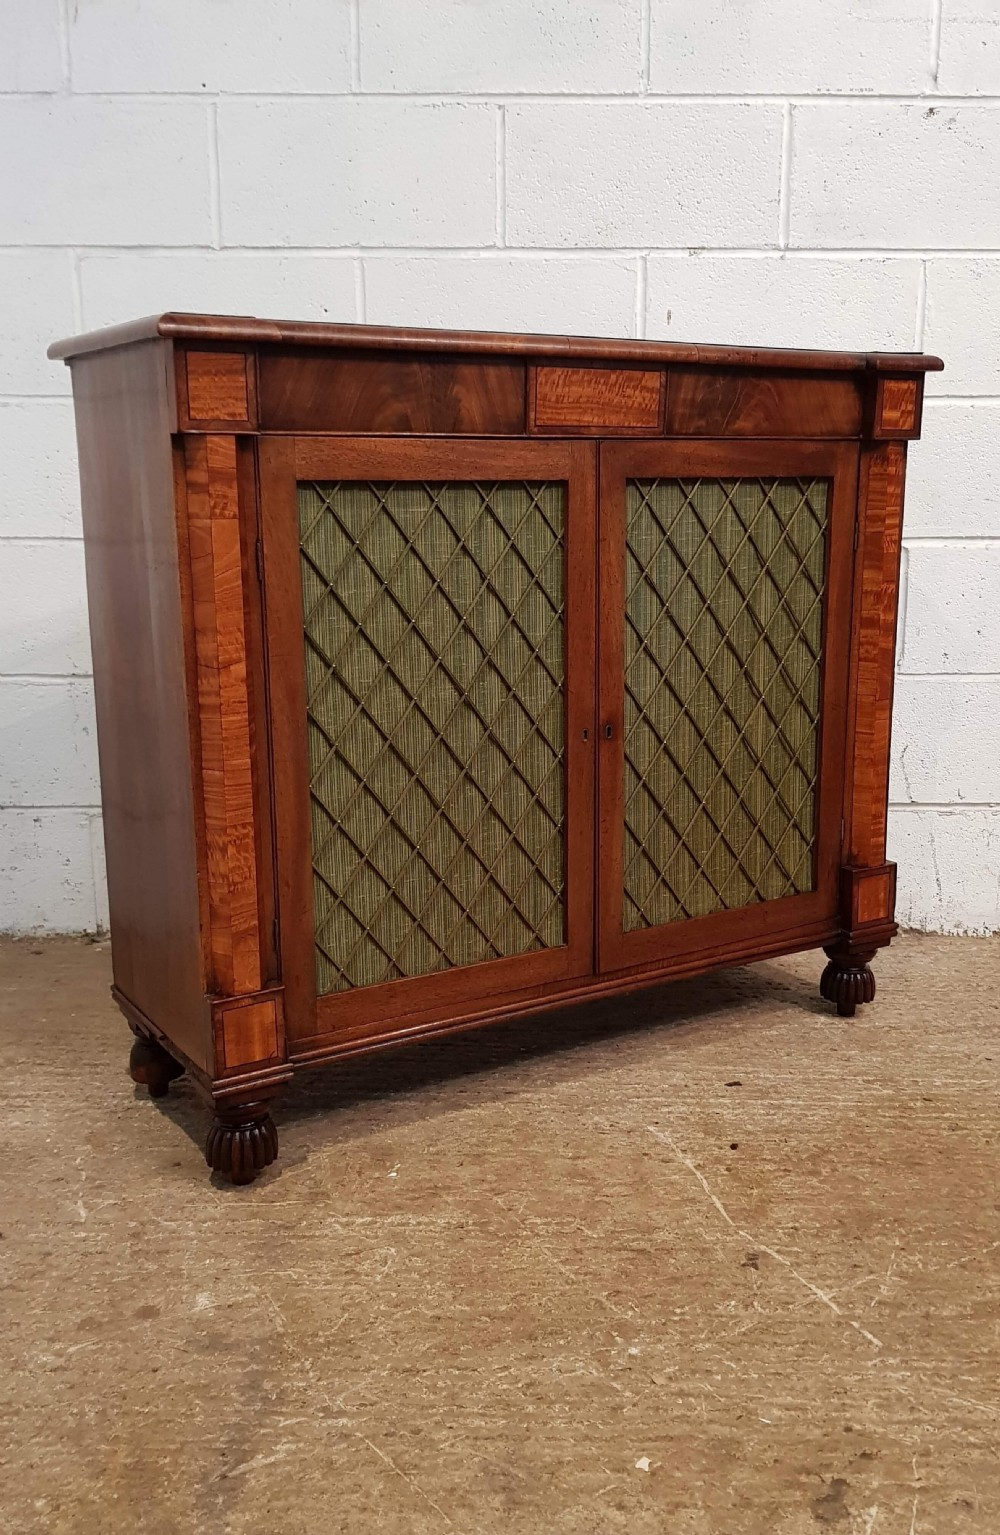 antique william 1v mahogany satinwood chiffonier sideboard with original gilt brass grills c1830